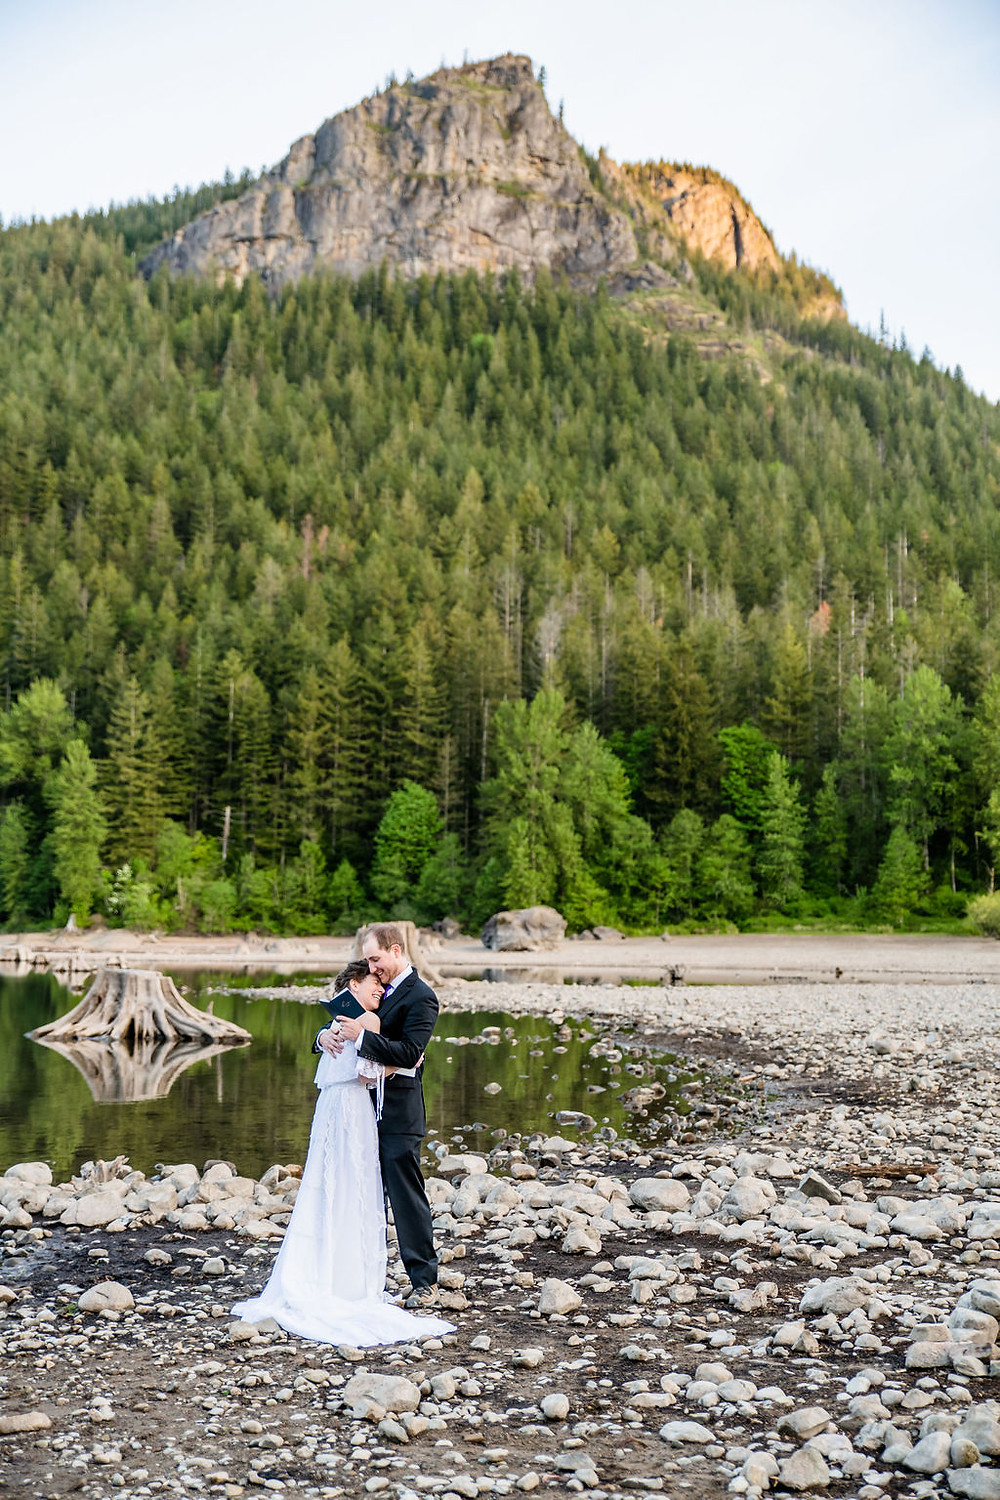 A bride and groom taking a moment to cuddle during their vows at sunrise in Washington by a lake